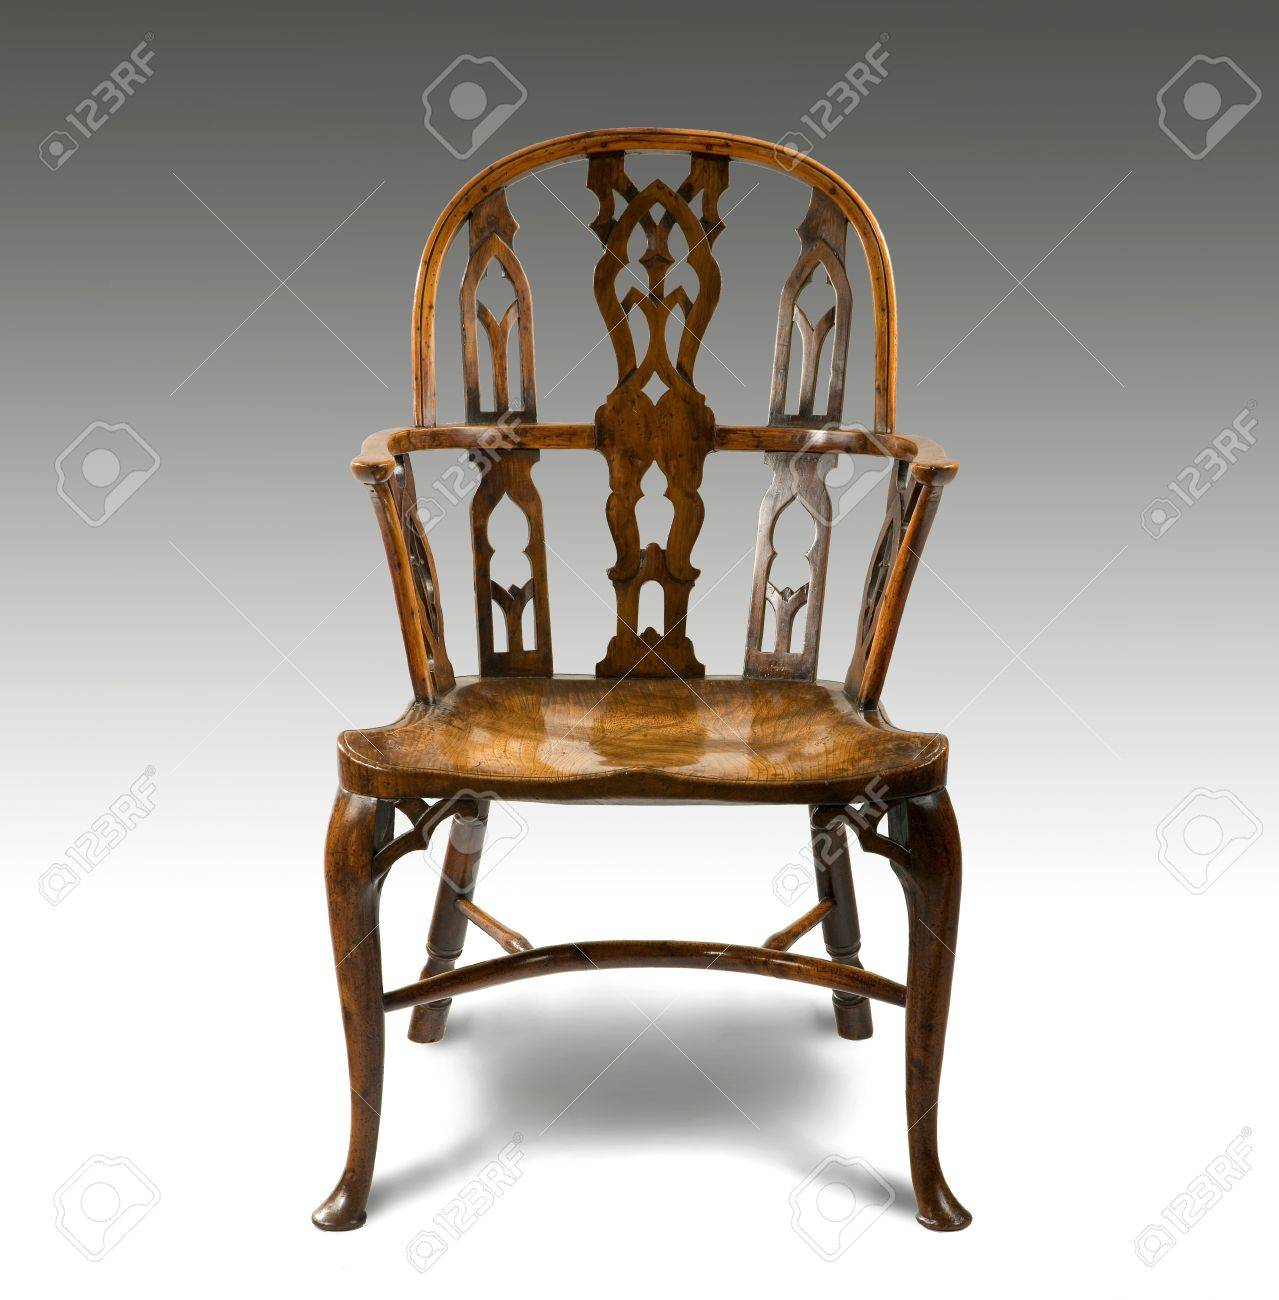 Lovely antique Windsor chair Stock Photo - 47681755 - Lovely Antique Windsor Chair Stock Photo, Picture And Royalty Free